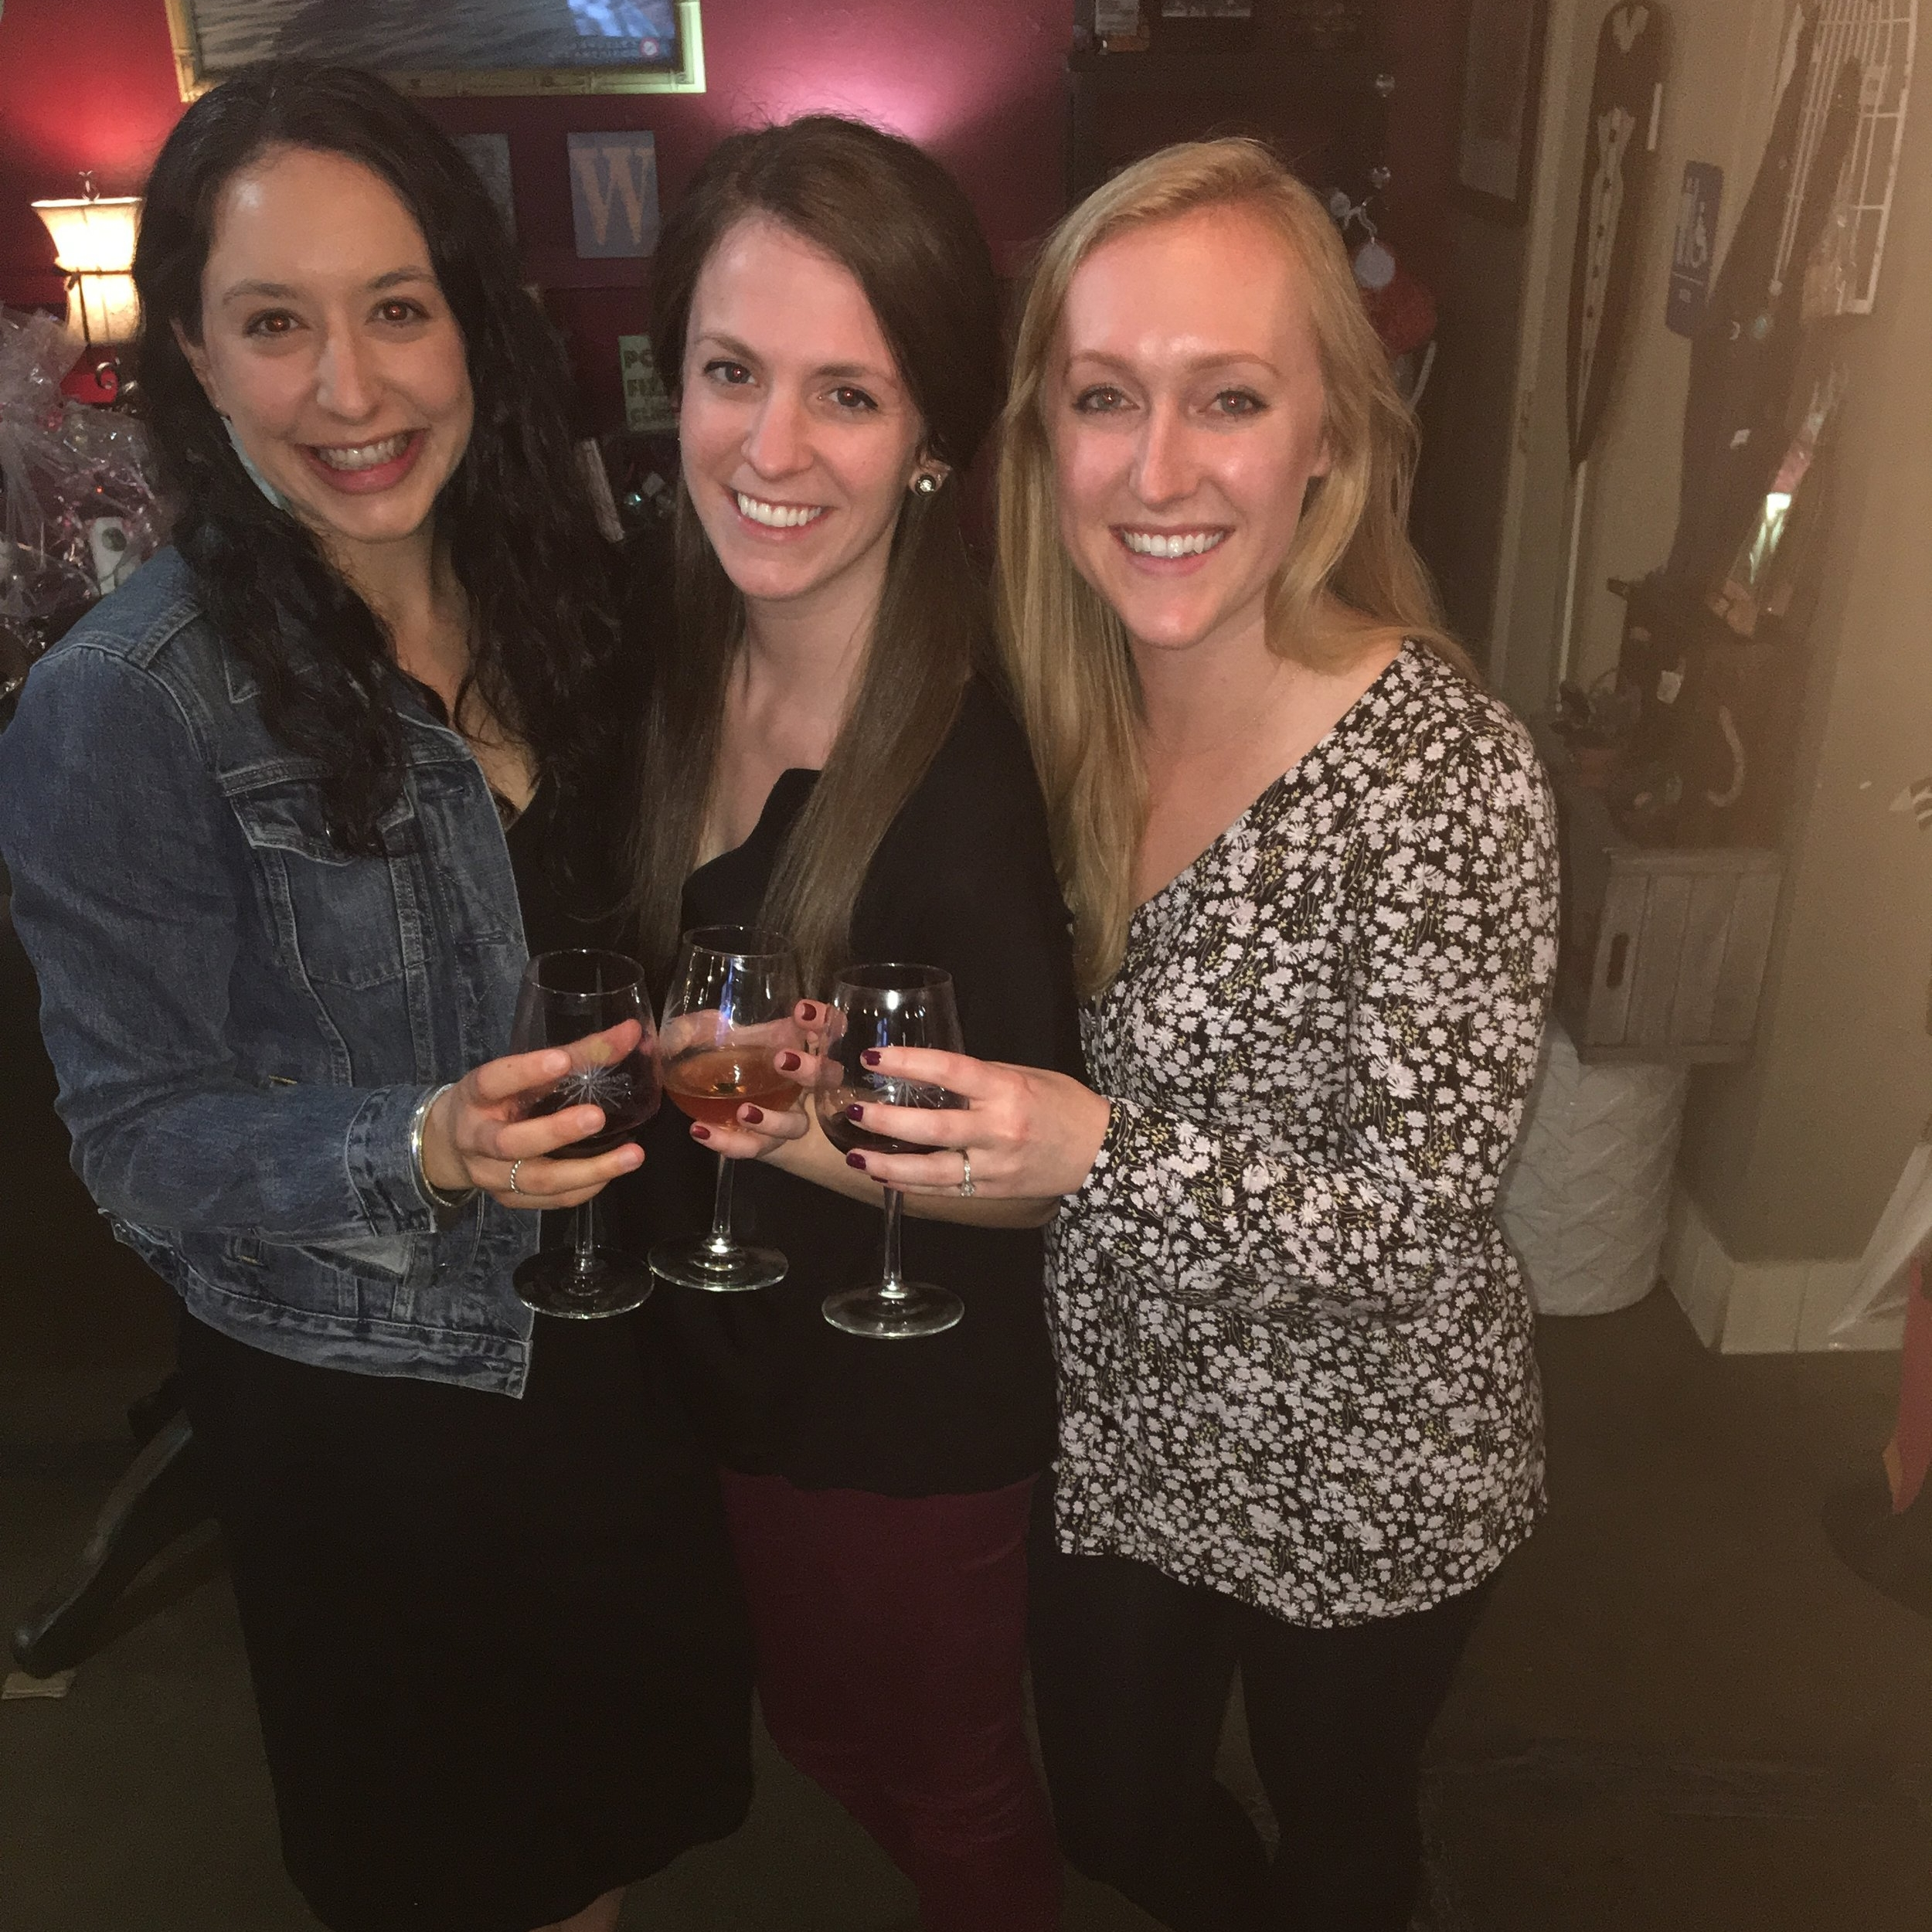 Wine tasting with the girls!